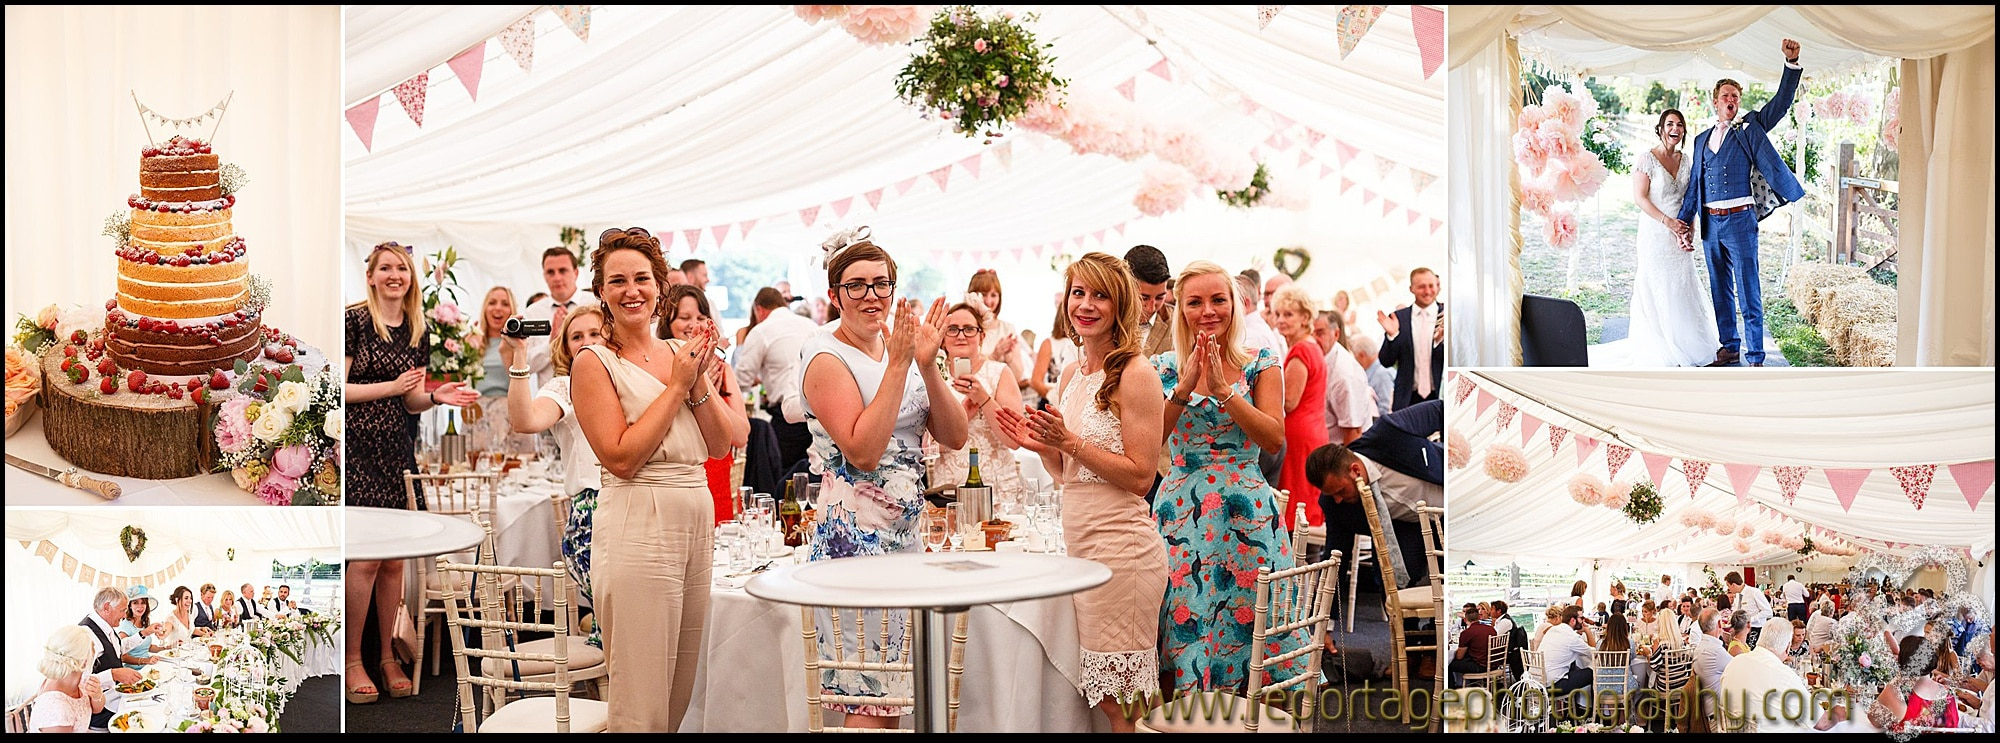 Marquee wedding in Essex